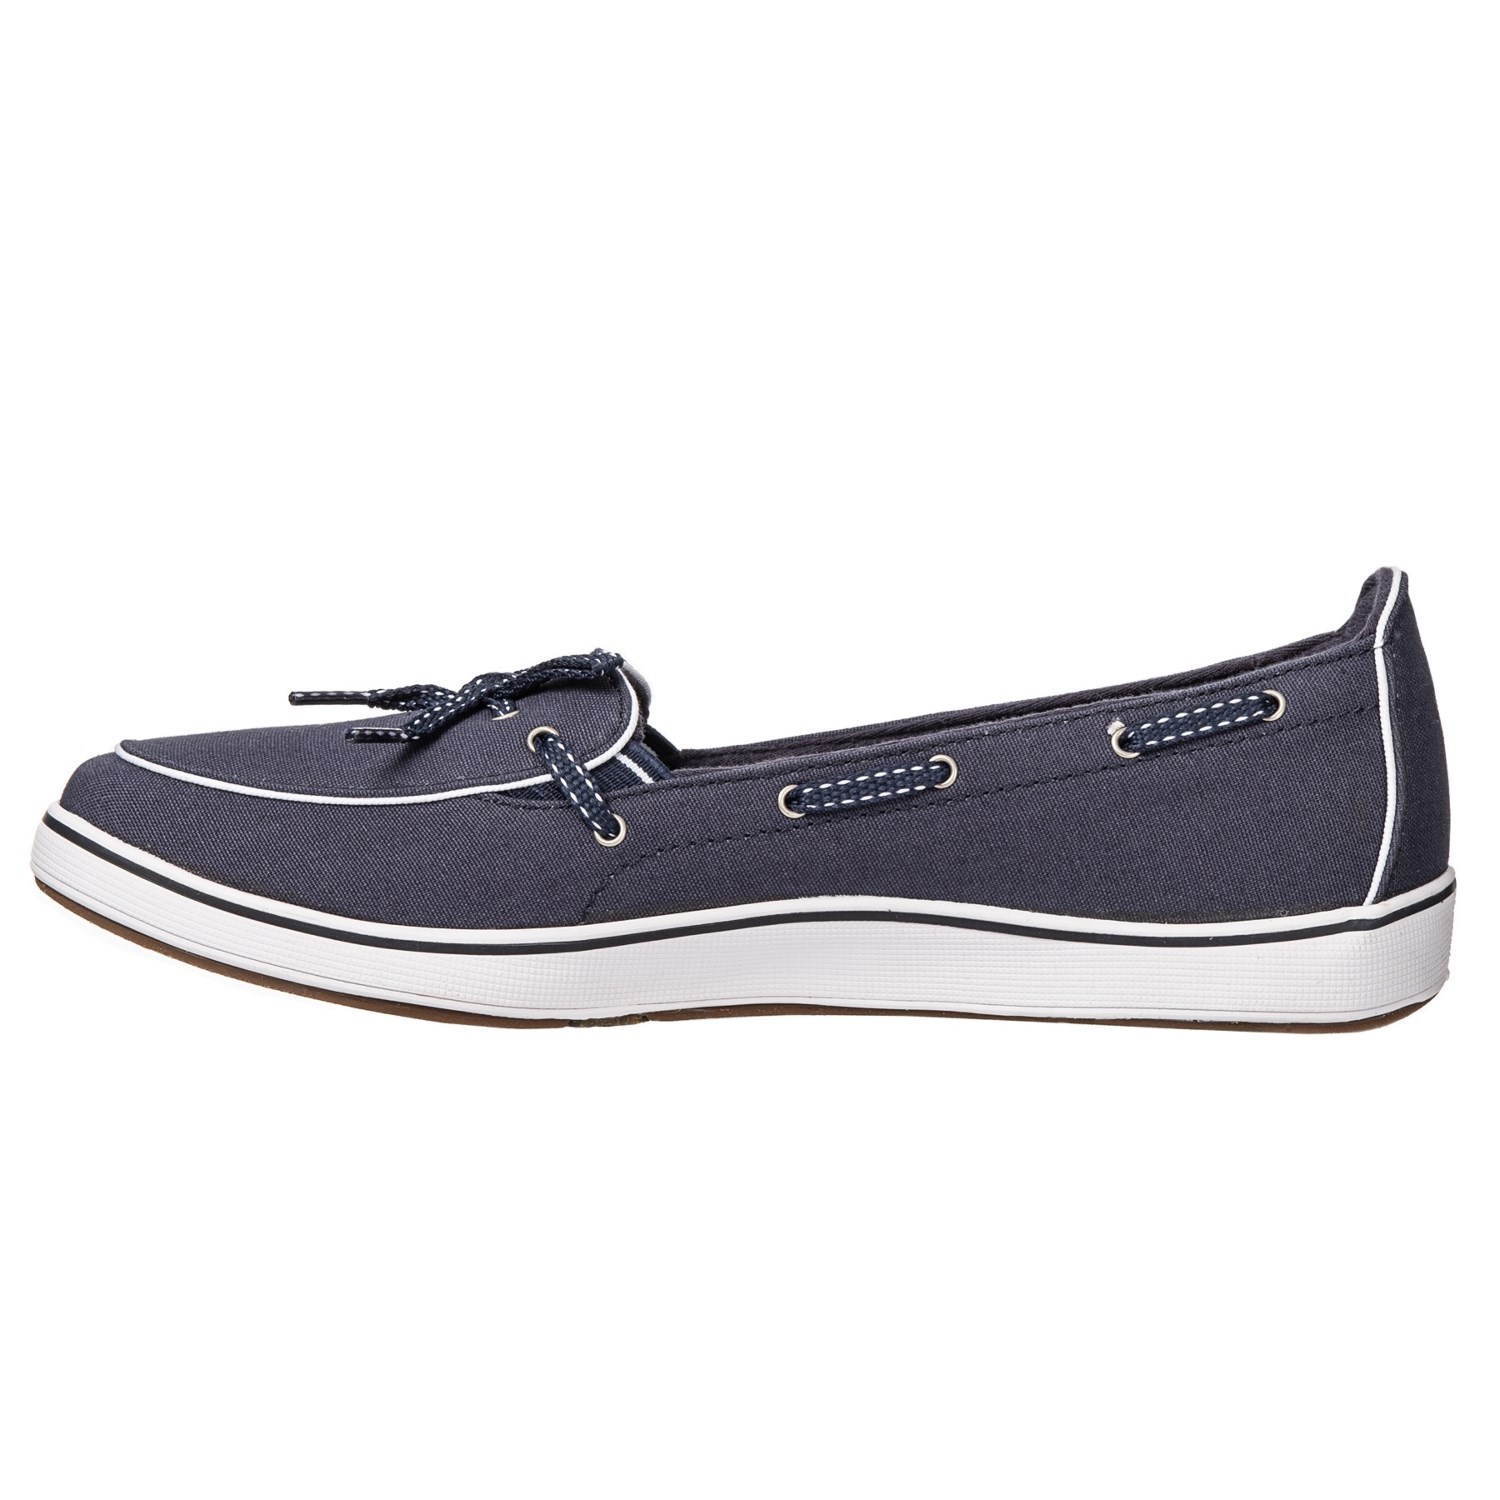 802238ca20 Grasshoppers Windham Boat Shoes (For Women) - Save 50%